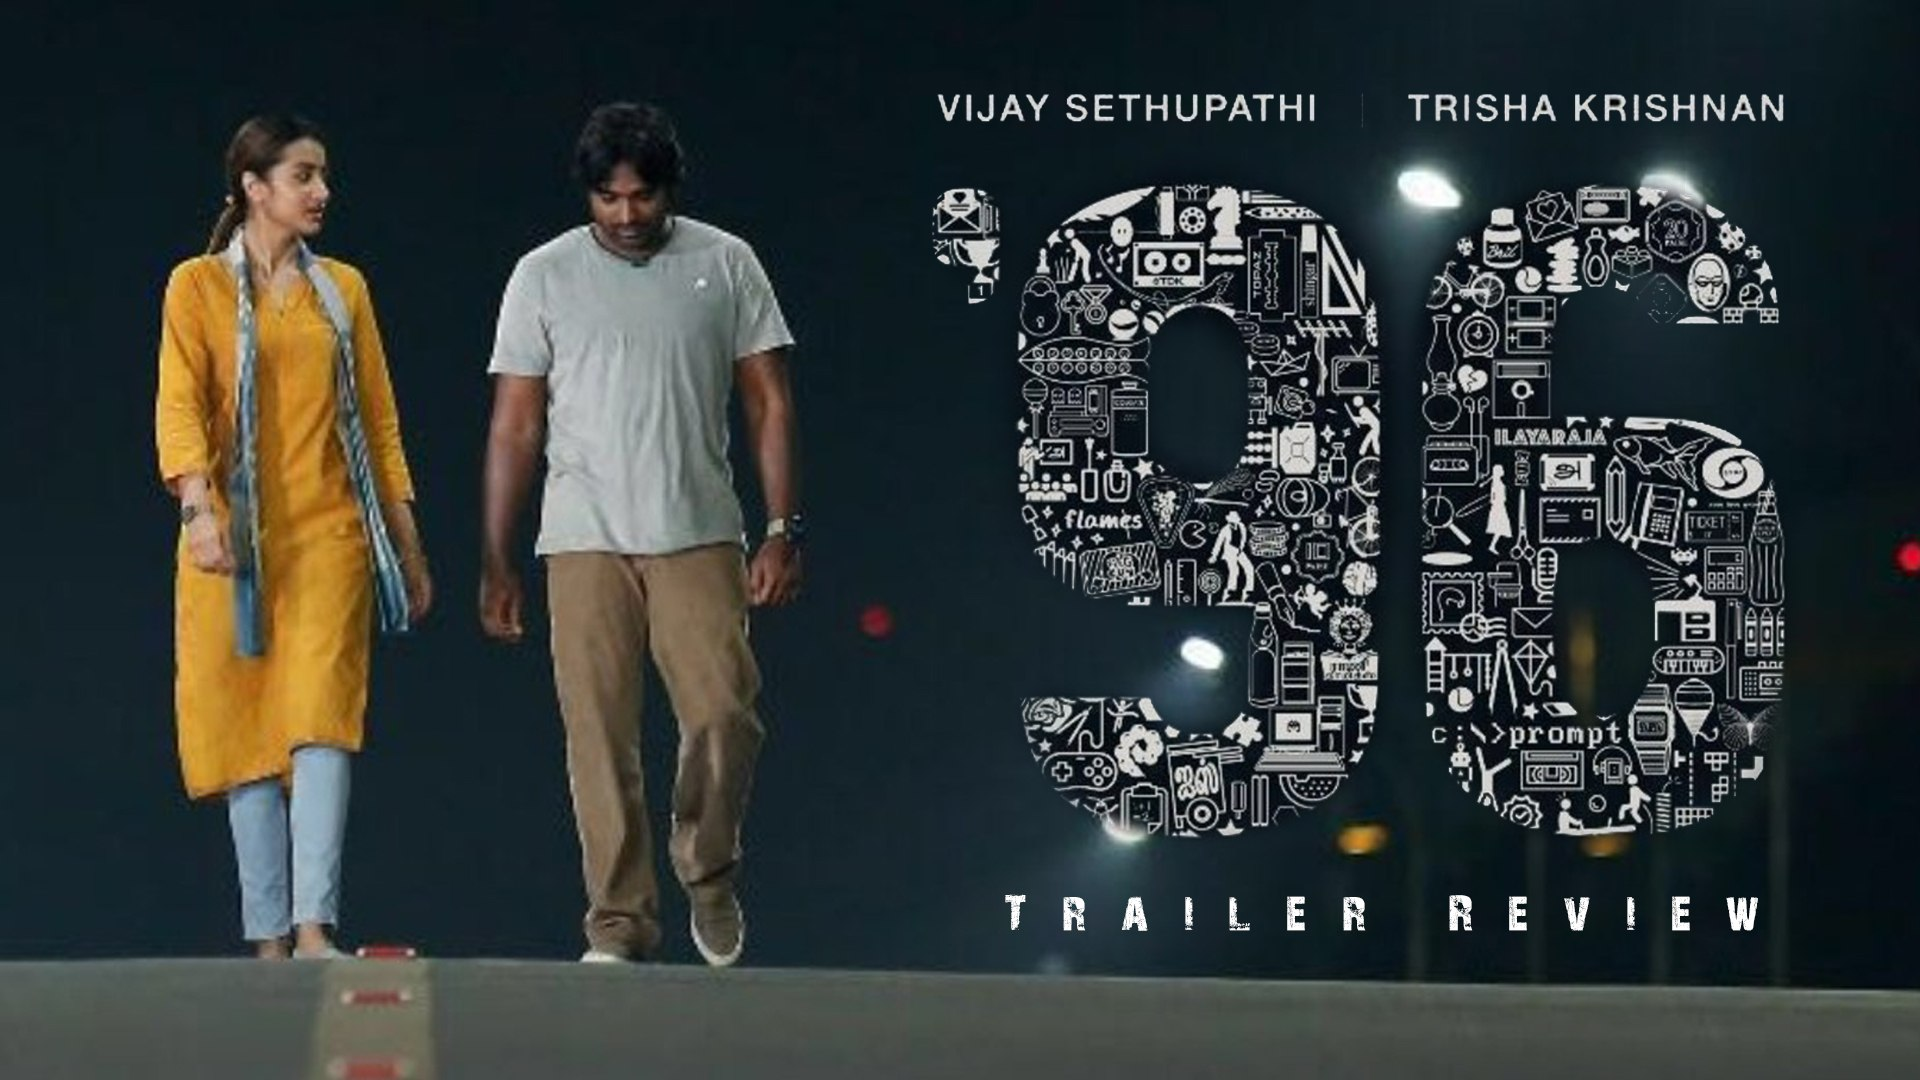 #96 Movie Trailer Review | Vijay Sethupathi | Trisha Krishnan